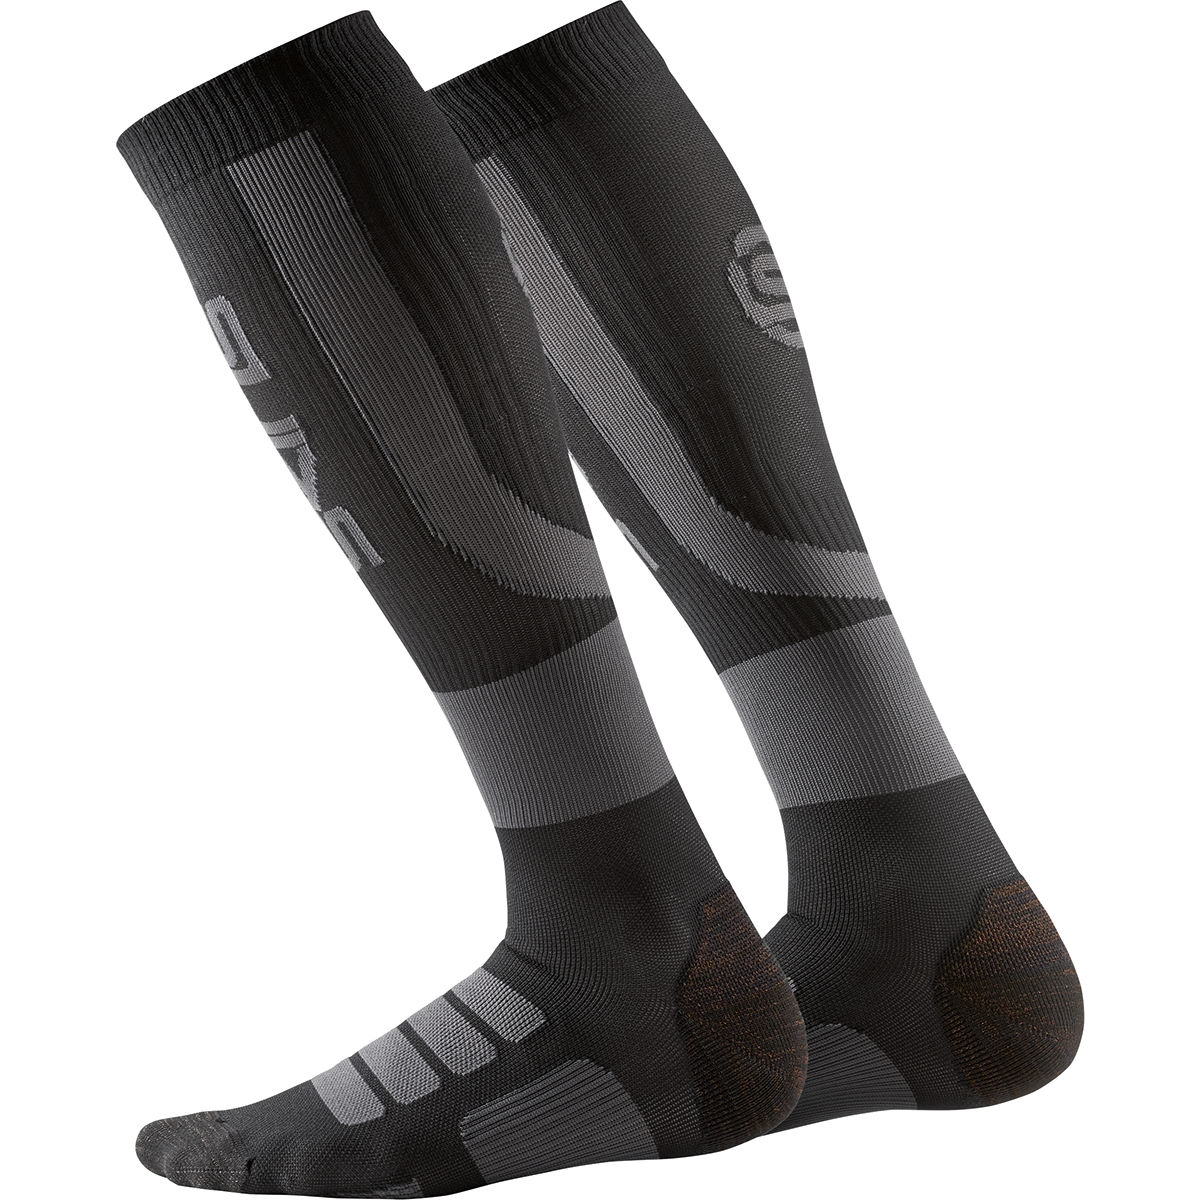 Calcetines SKINS Essentials Active Compression - Calcetines de compresión